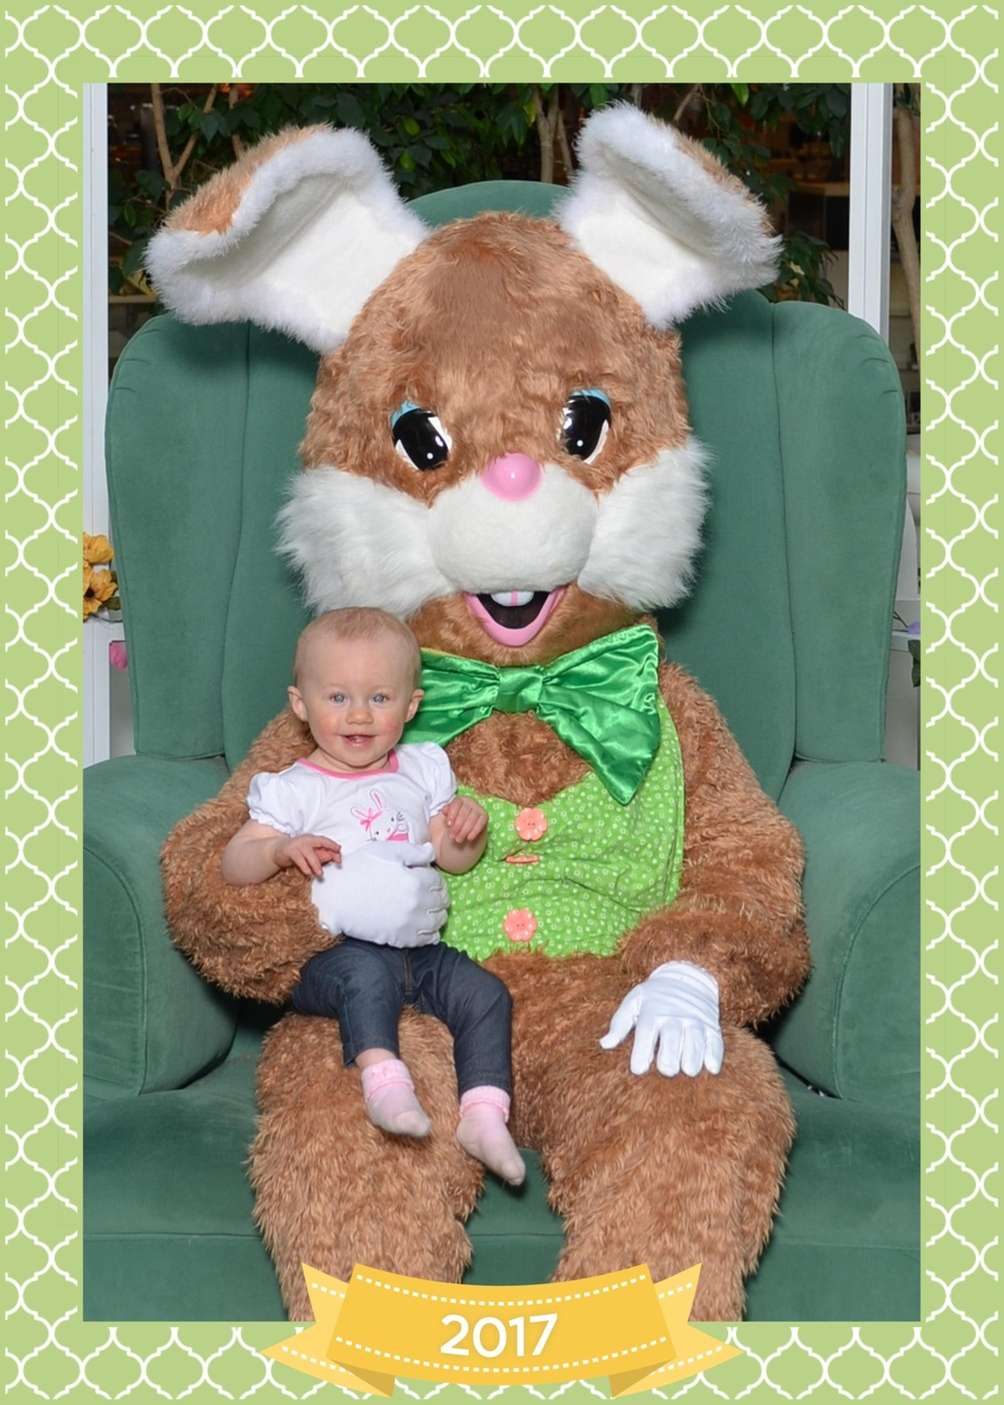 Trinity w her 1st Easter bunny